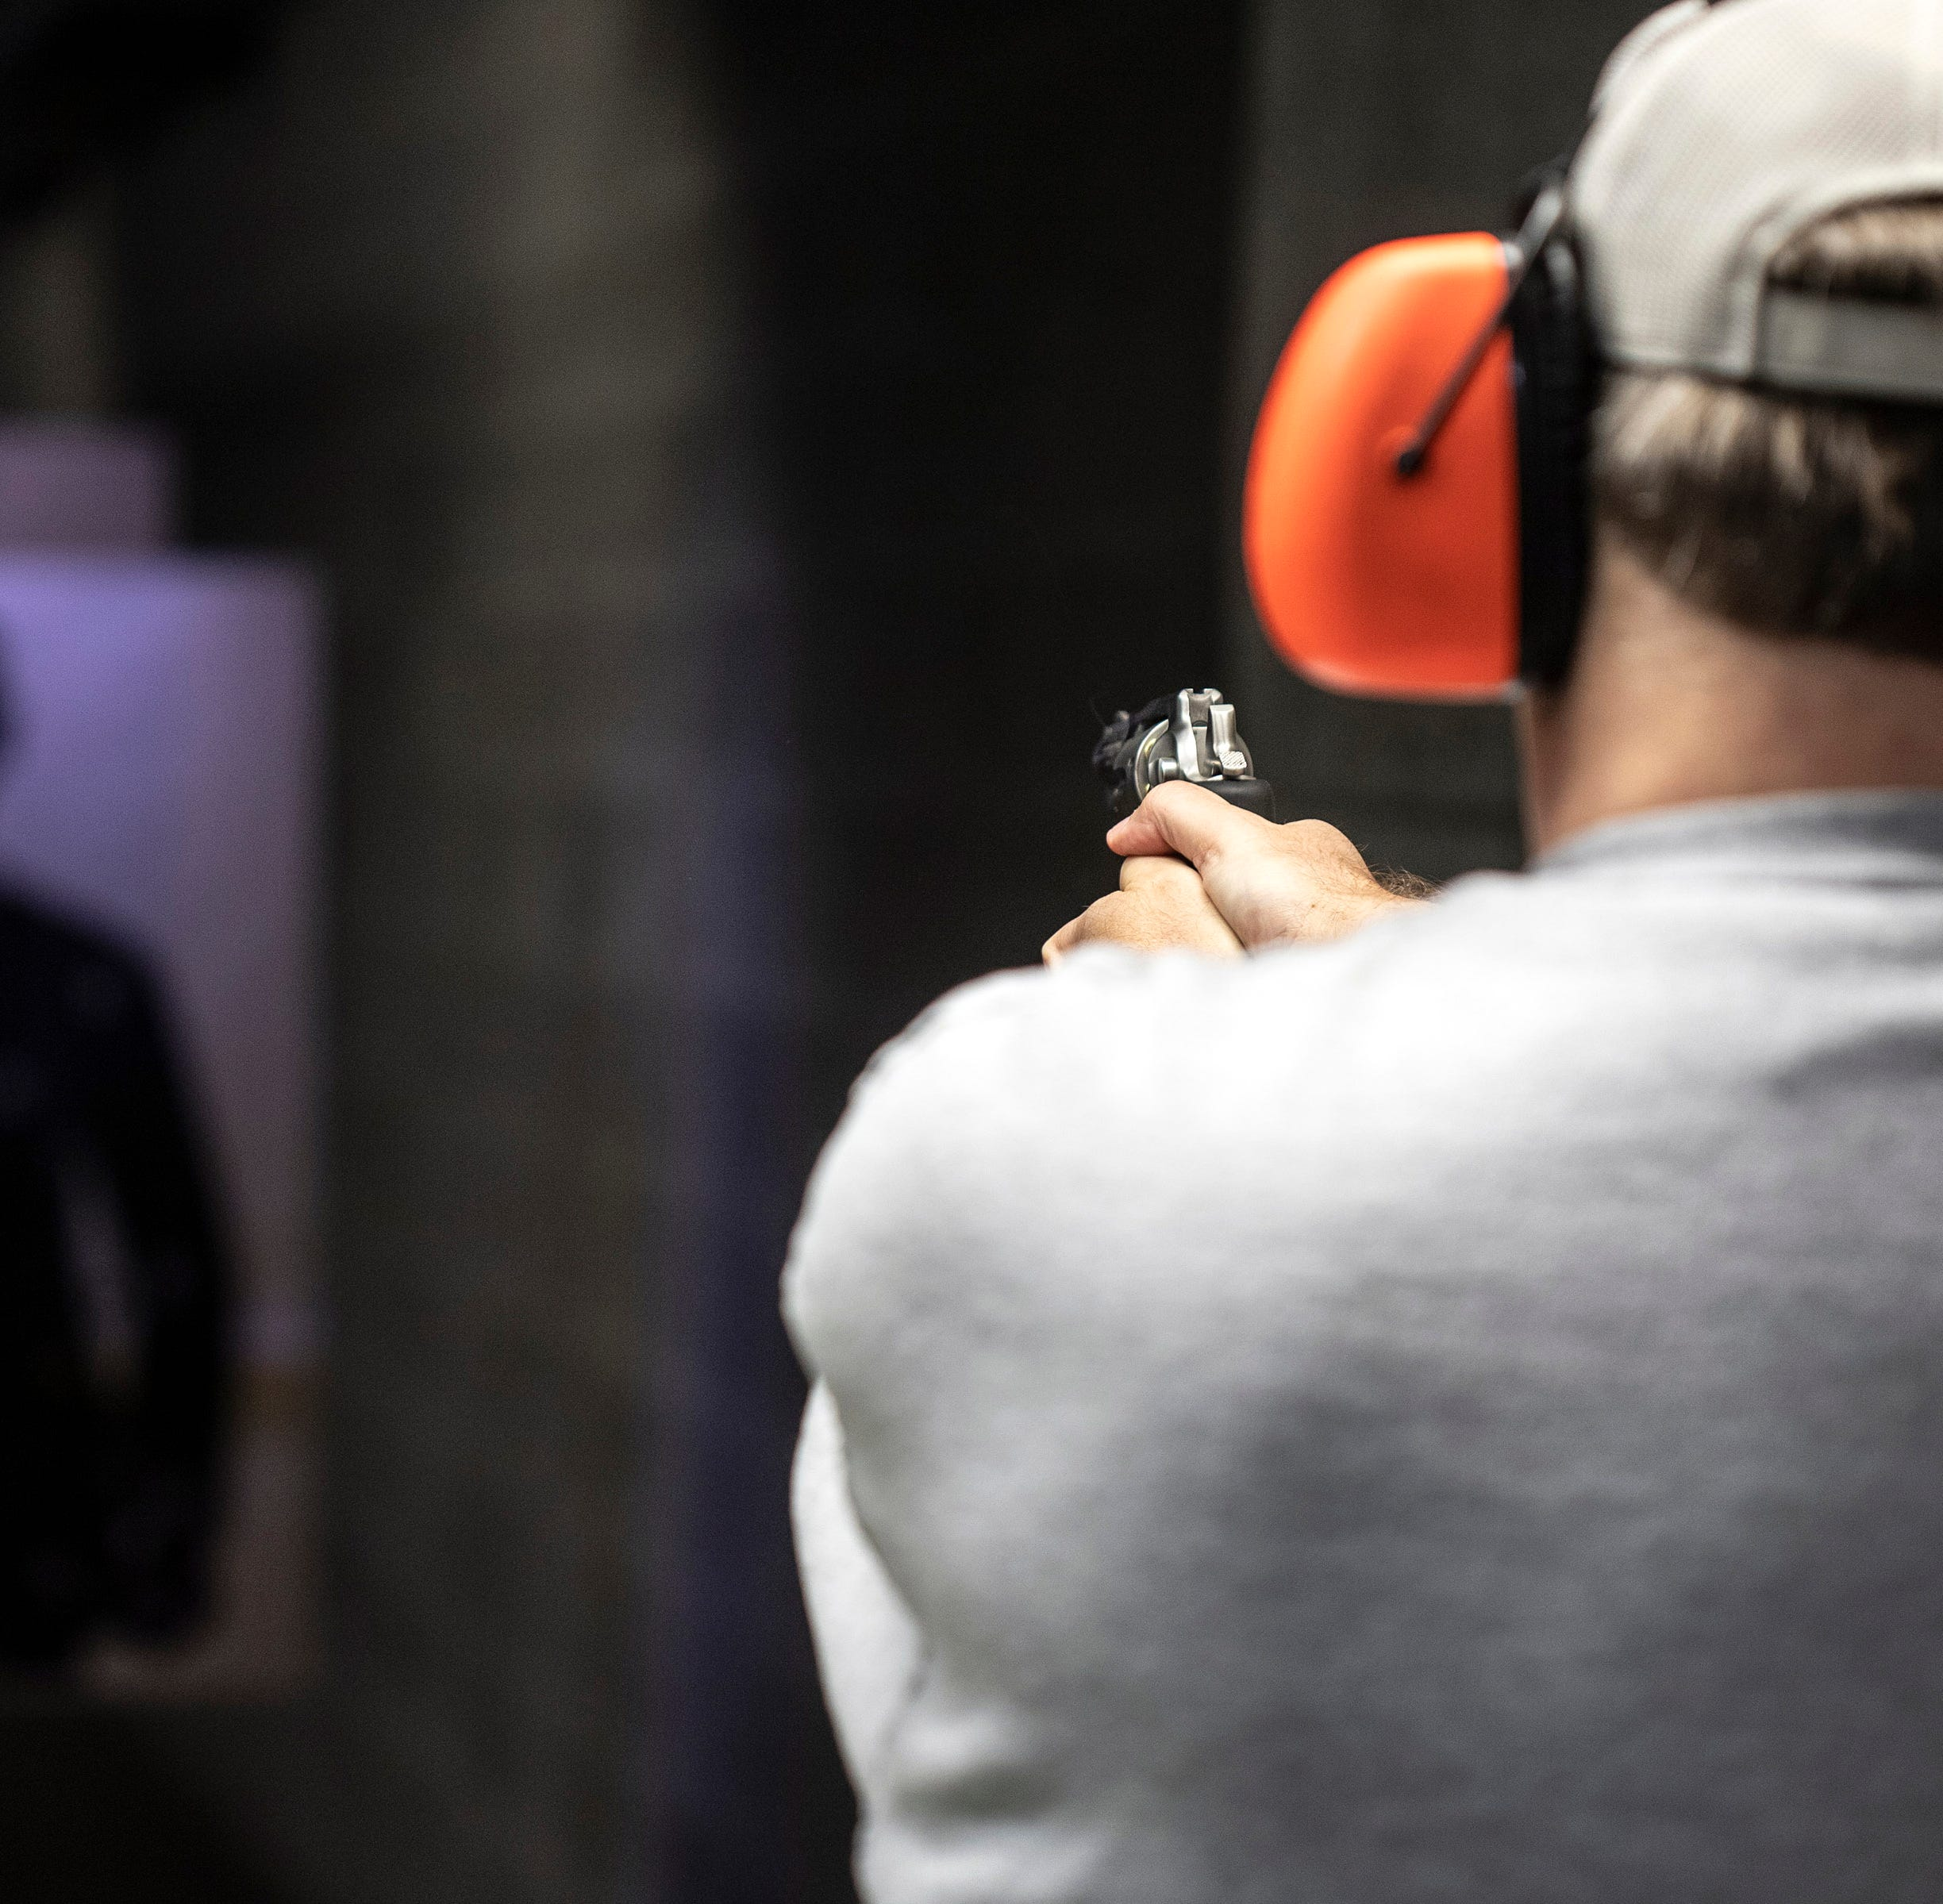 I have zero experience with a handgun. But Kentucky says I'm an expert